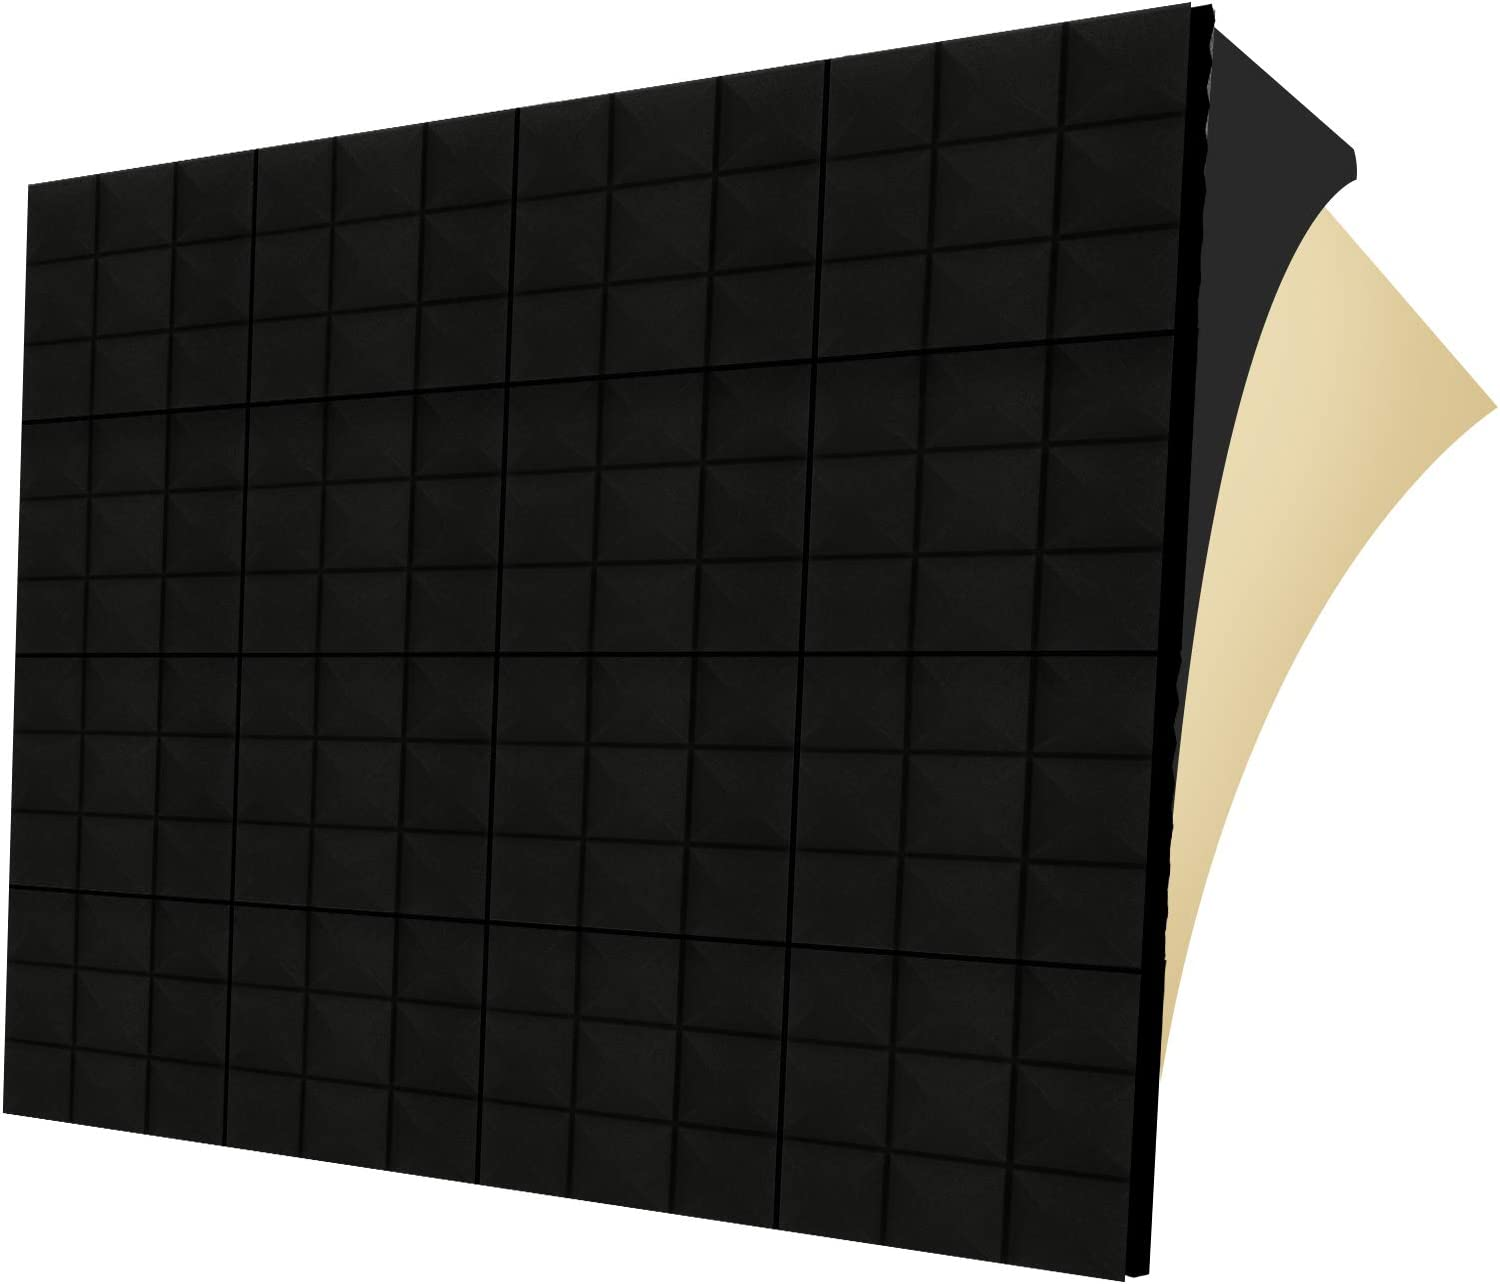 "G-WACK 12 Pack SELF-ADHESIVE Sound Proof Foam Panels, 1.5"" X 12""x 12"", Acoustic Foam Panels,sound Proofing Padding for Wall, Noise Blocker, Sound Absorbing Panel Acoustic Tiles Gaming Room Studio Foam"